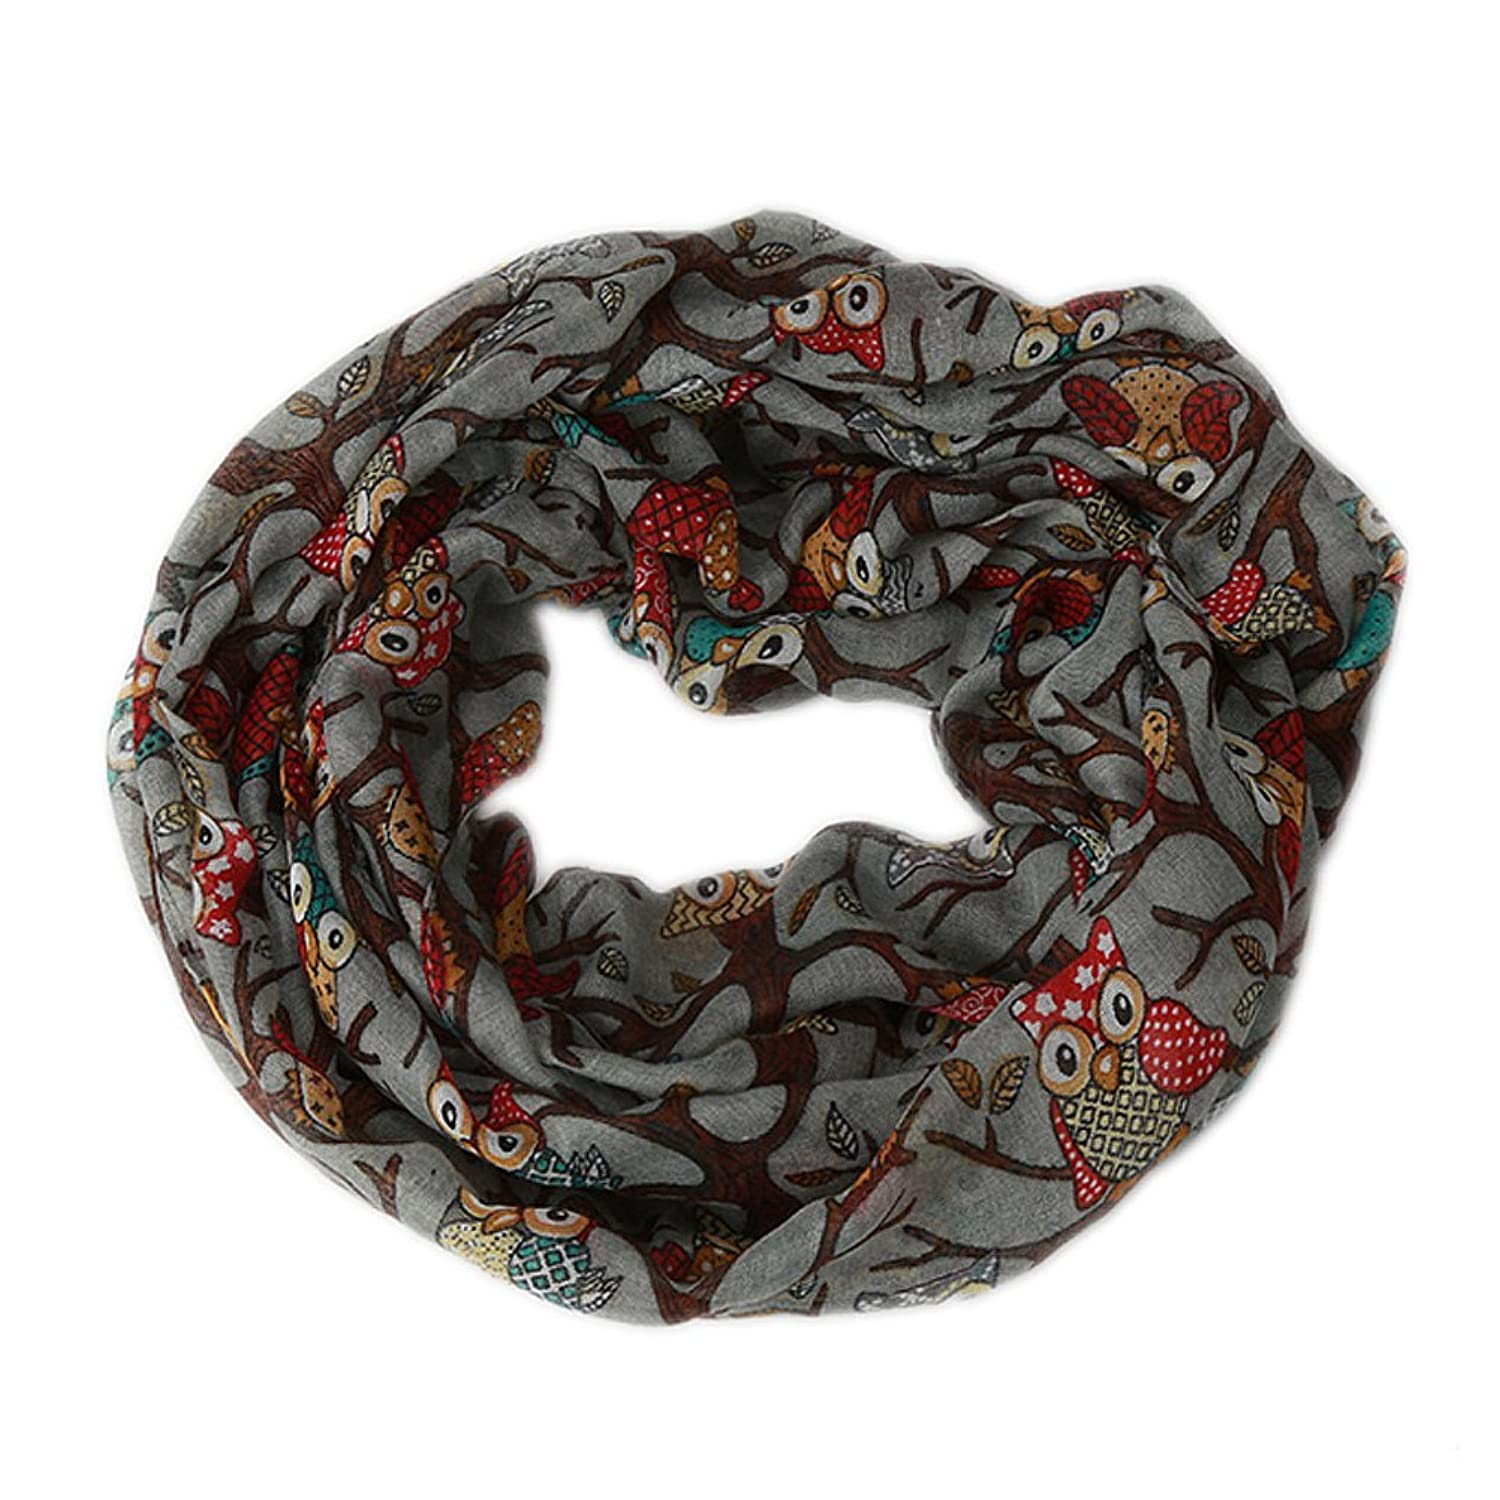 IvyFlair Women's Soft Elegant Owl on Tree Print Infinity Circle Loop Scarf